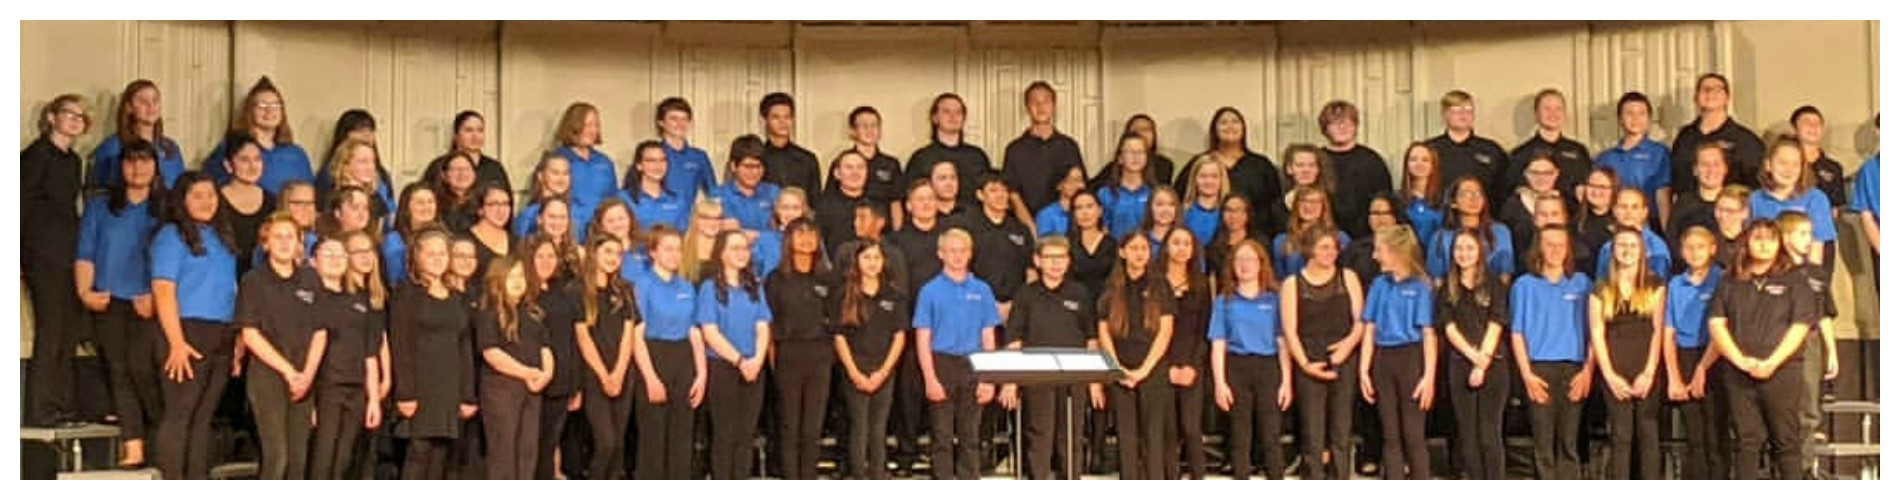 7th, 8th, and HS Choir.